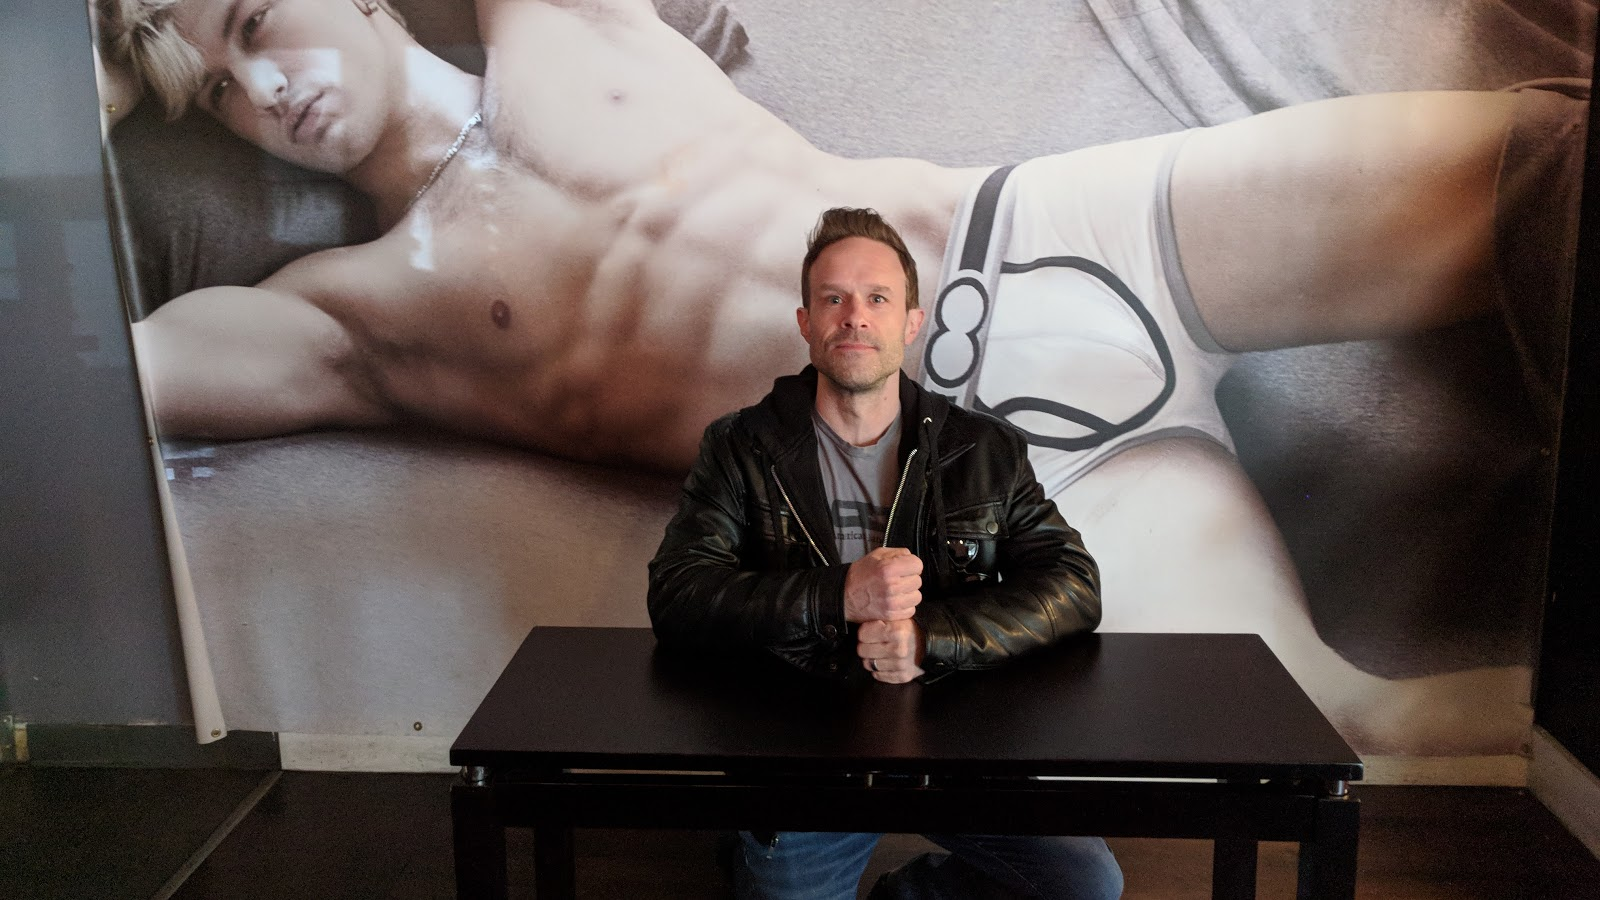 Image of Tom Ray at table in front of giant model in his underwear